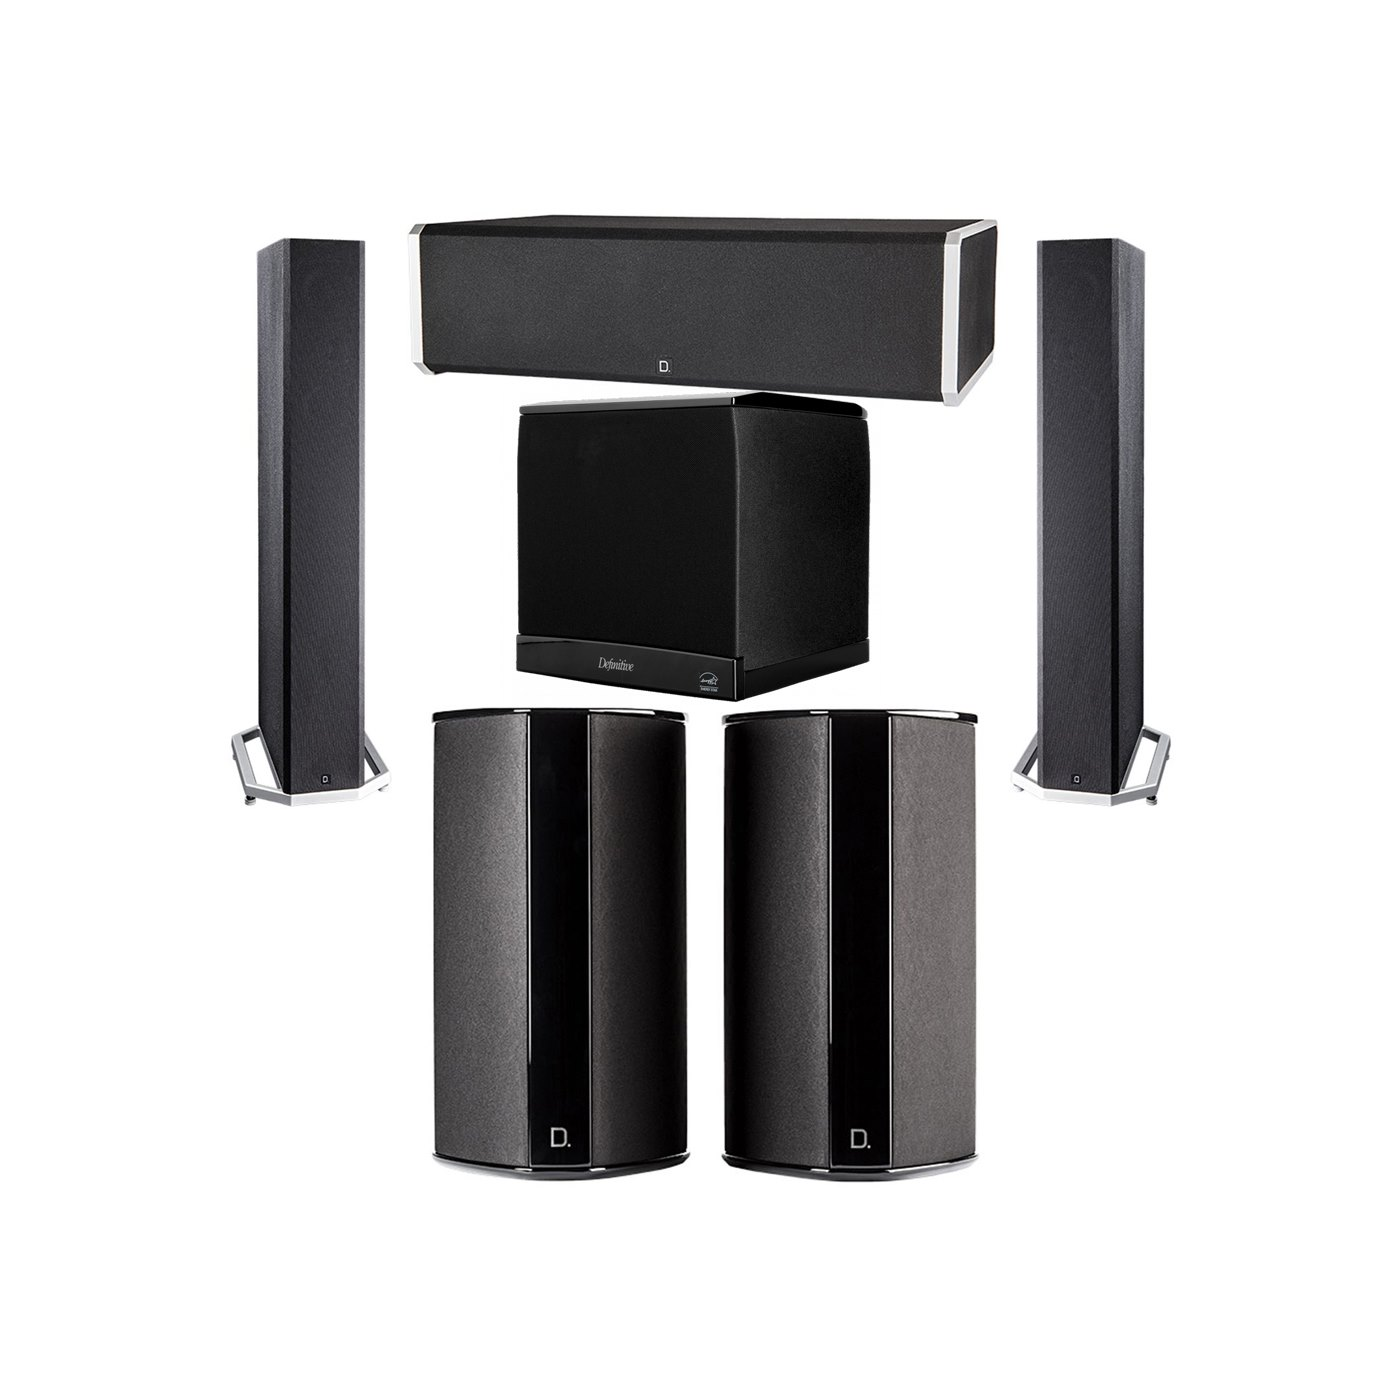 Definitive Technology 5.1 System with 2 BP9040 Tower Speakers, 1 CS9060 Center Channel Speaker, 2 SR9080 Surround Speaker, 1 Definitive Technology SuperCube 4000 Powered Subwoofer